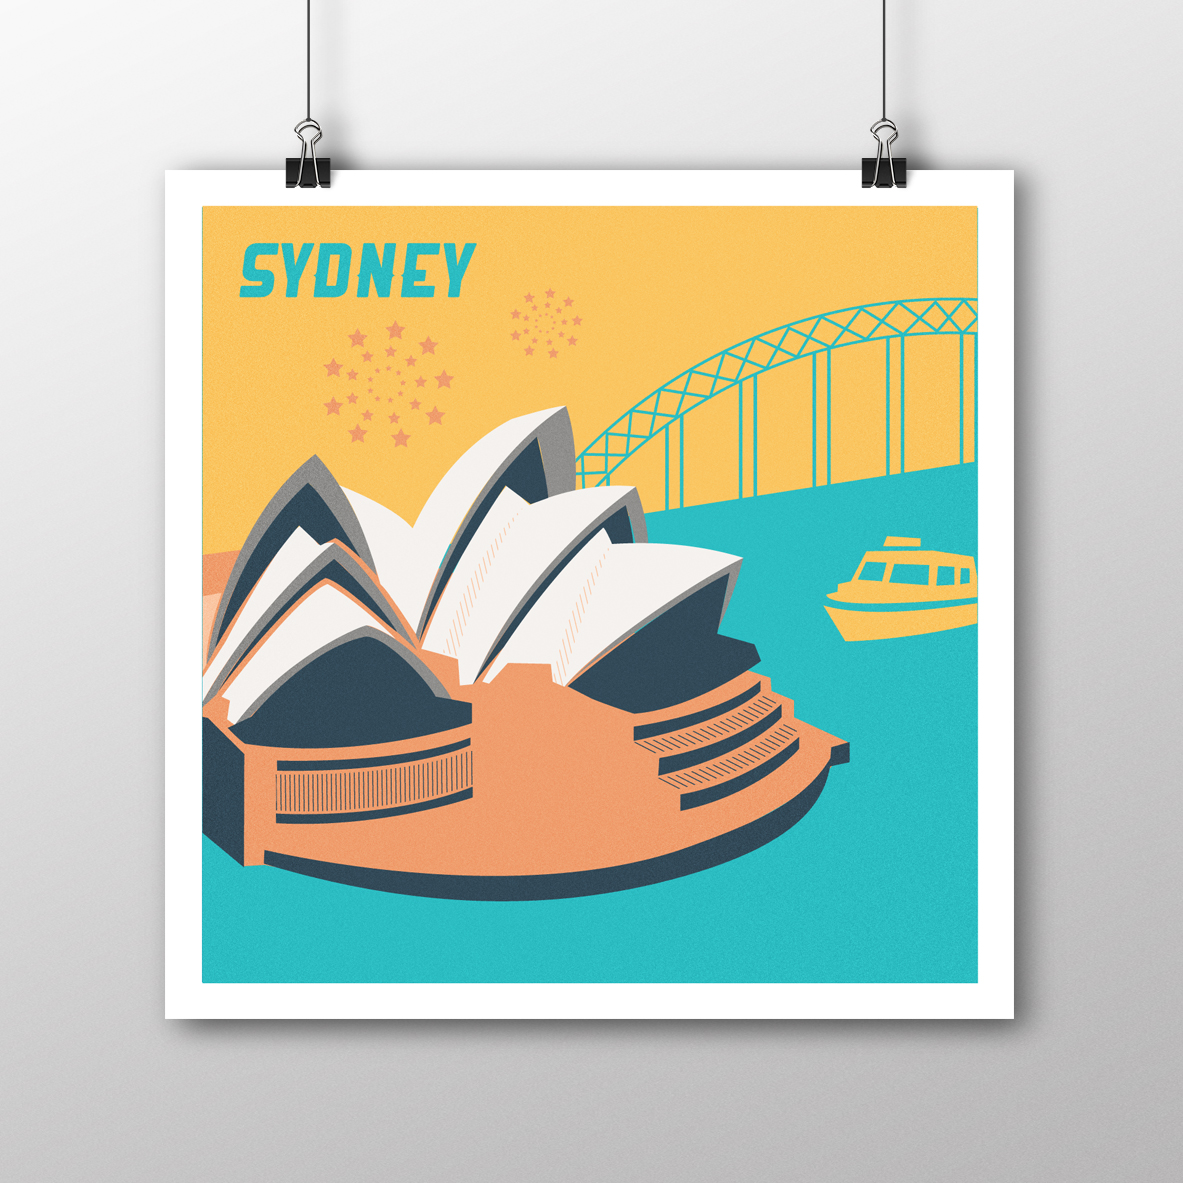 Sydney Illustrated Poster